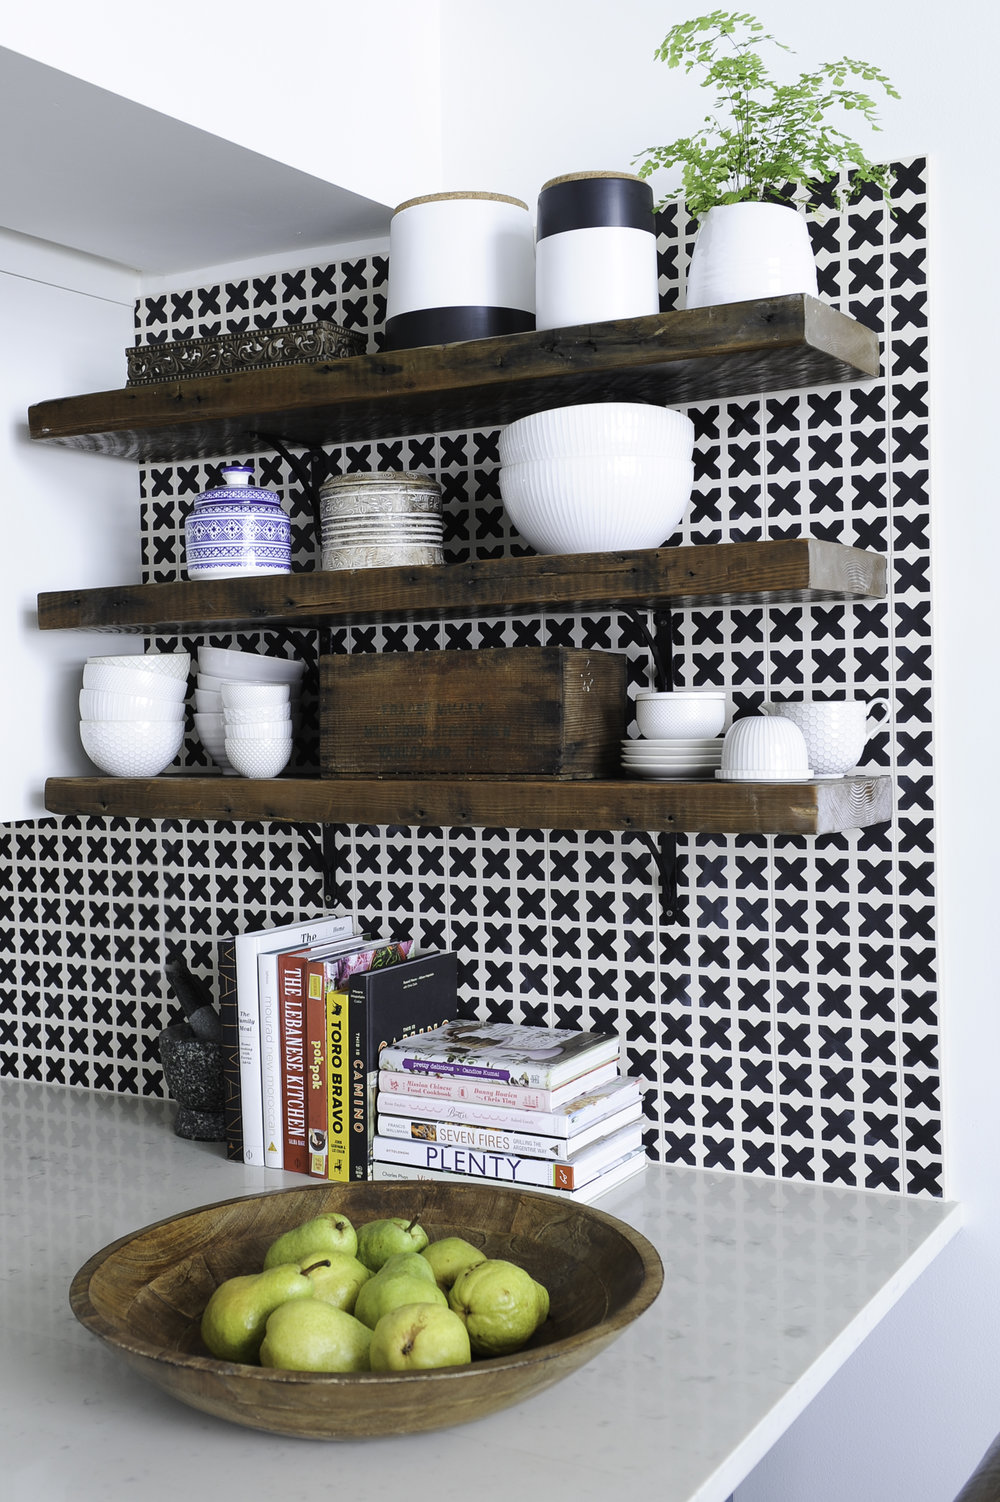 Wooden shelves on a black and white patterned tiled wall, with various kitchen items sat on the shelves, like bowls and ceramic jars and a wooden bowl of fruit and various cookbooks beside a double sink with gold fixtures